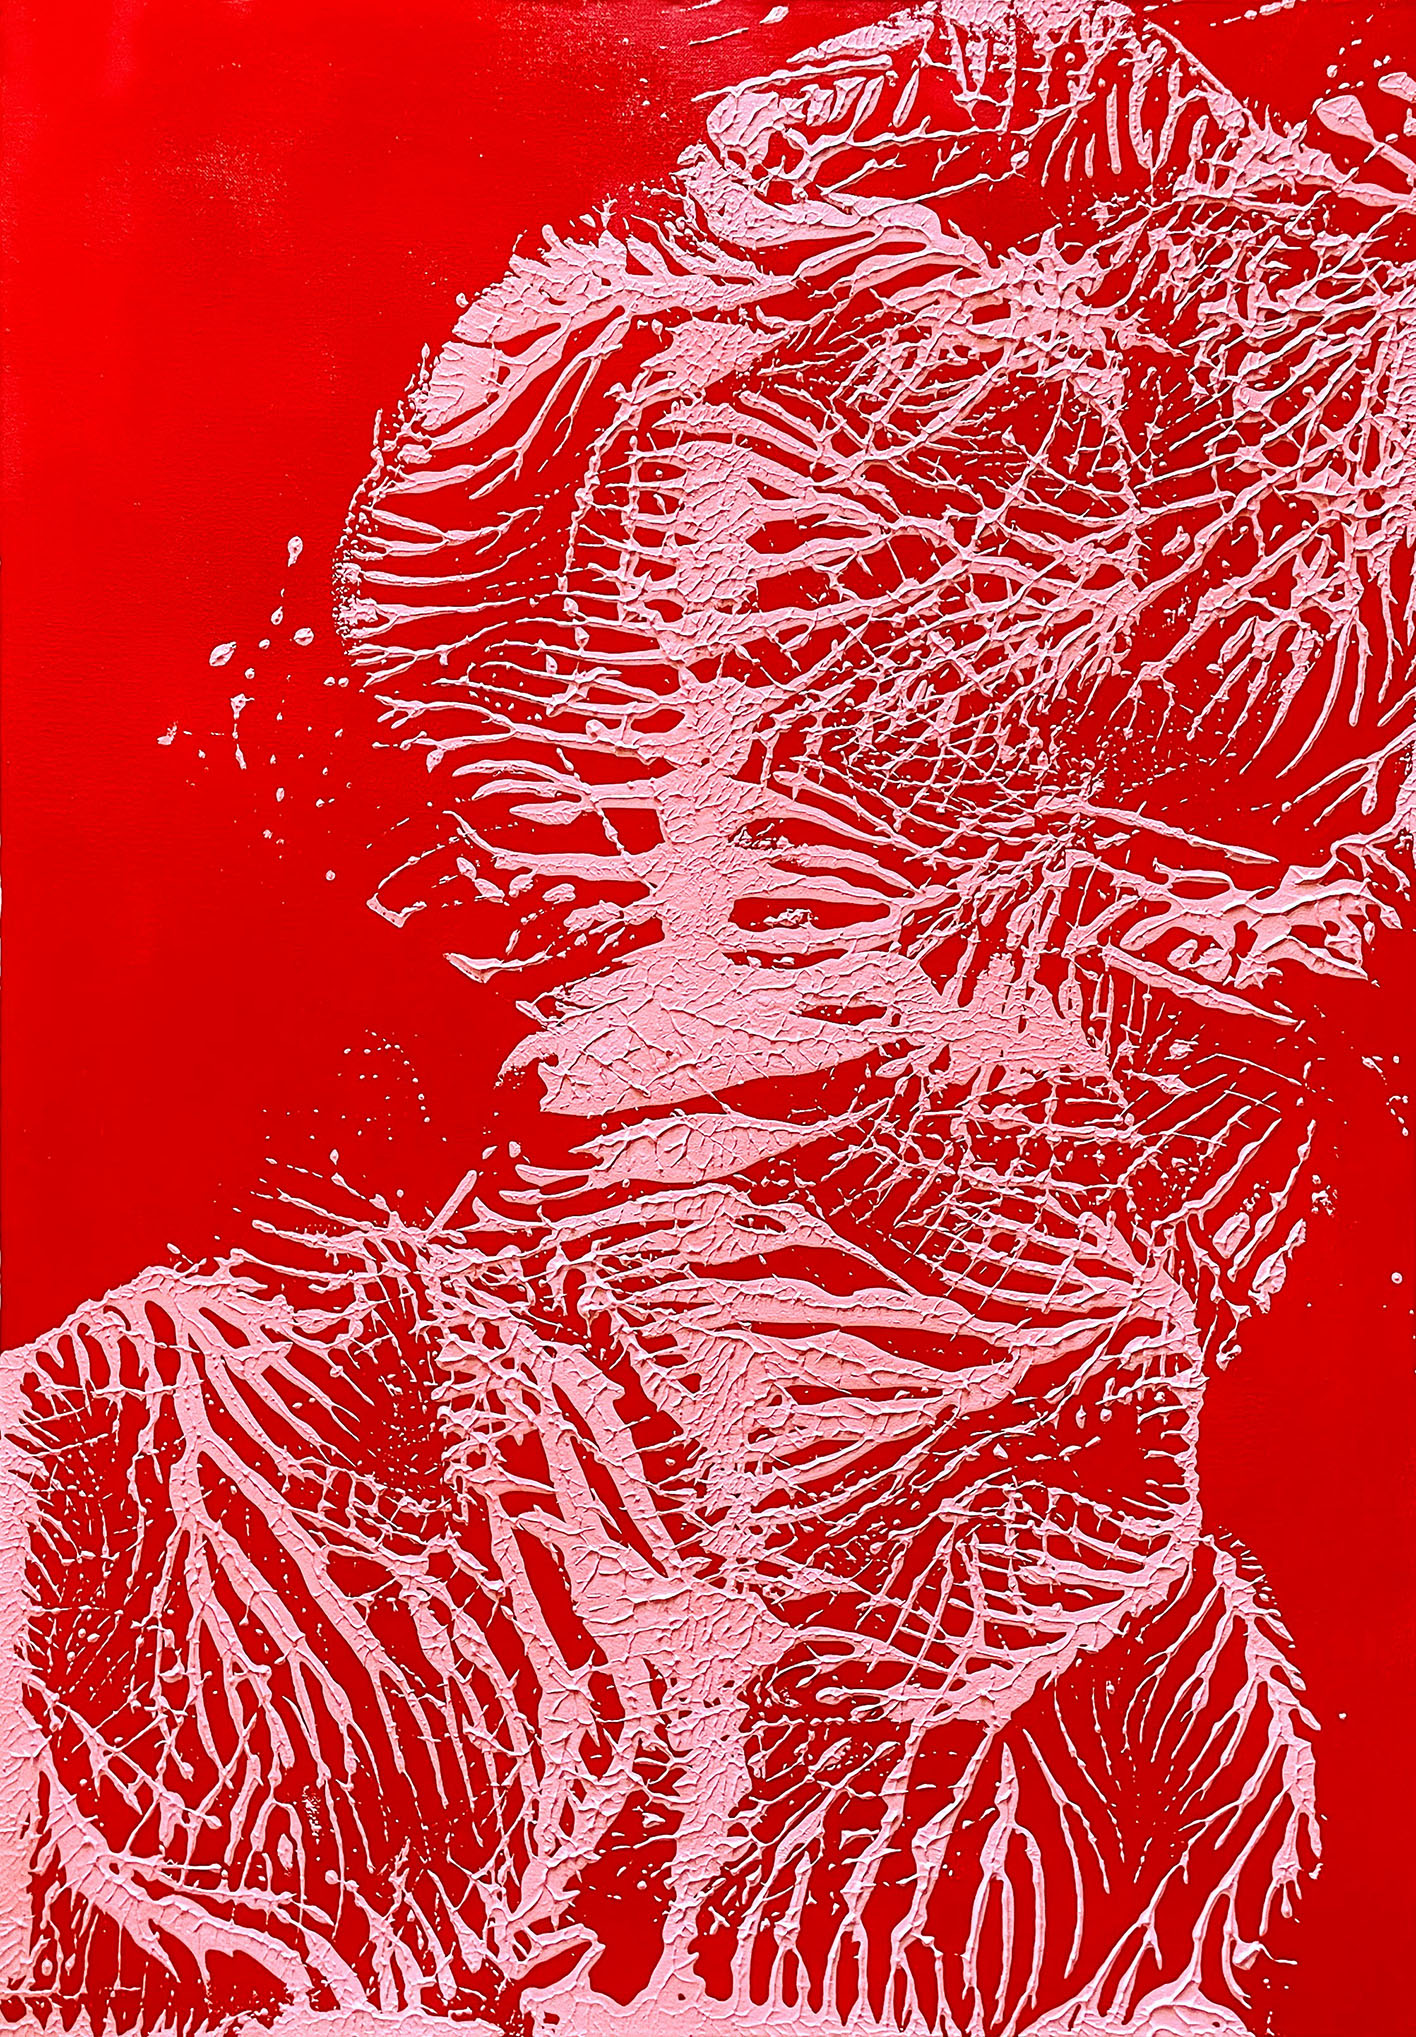 """Abstracts: """"Imprints,"""" Red and Pink"""""""", acrylics on canvas,100x70 cm,2021"""